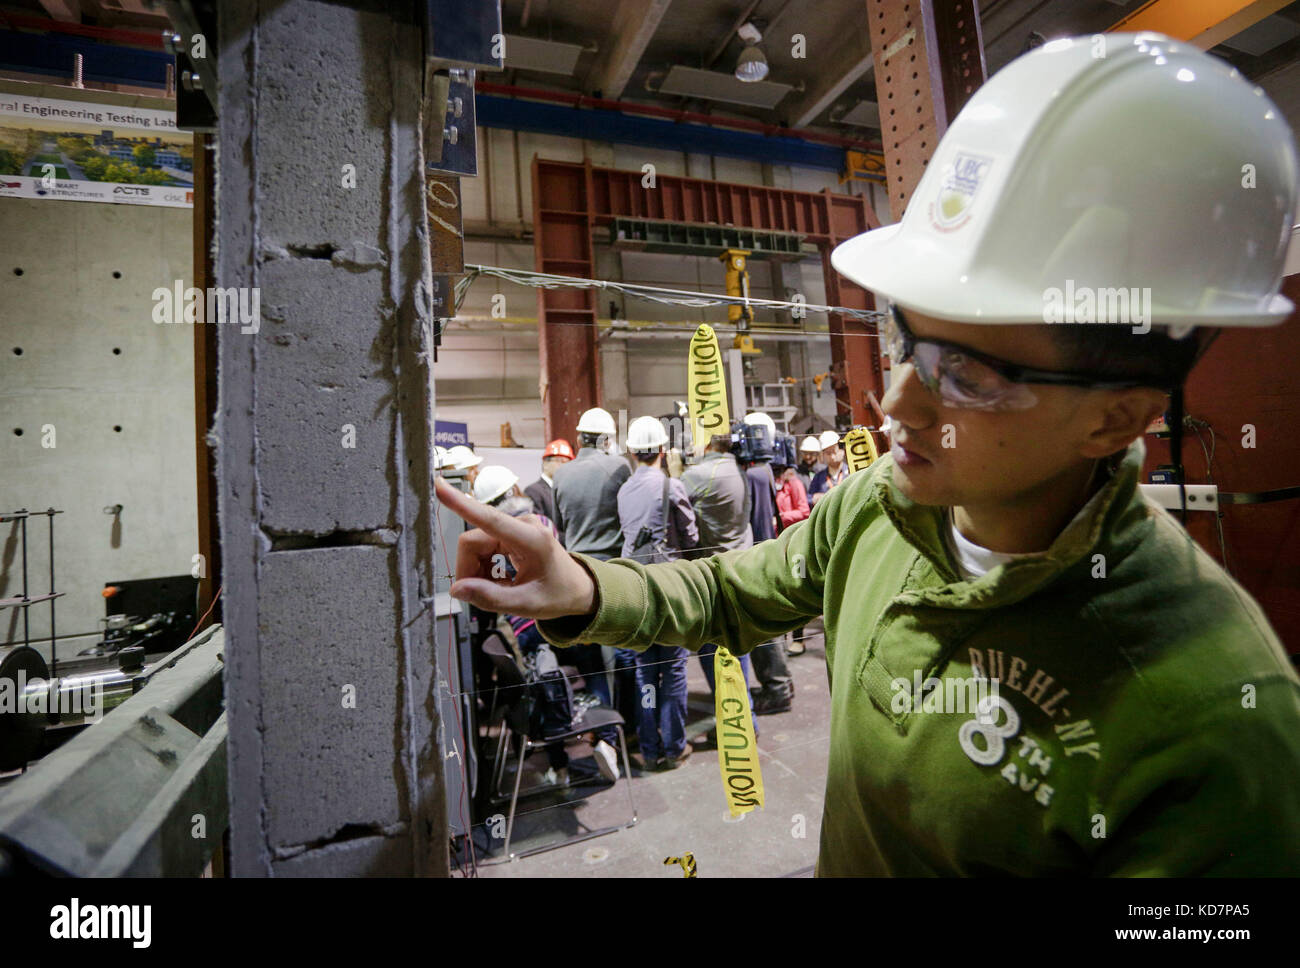 Vancouver. 10th Oct, 2017. A researcher takes a closer look to the concrete wall coated with eco-friendly ductile - Stock Image